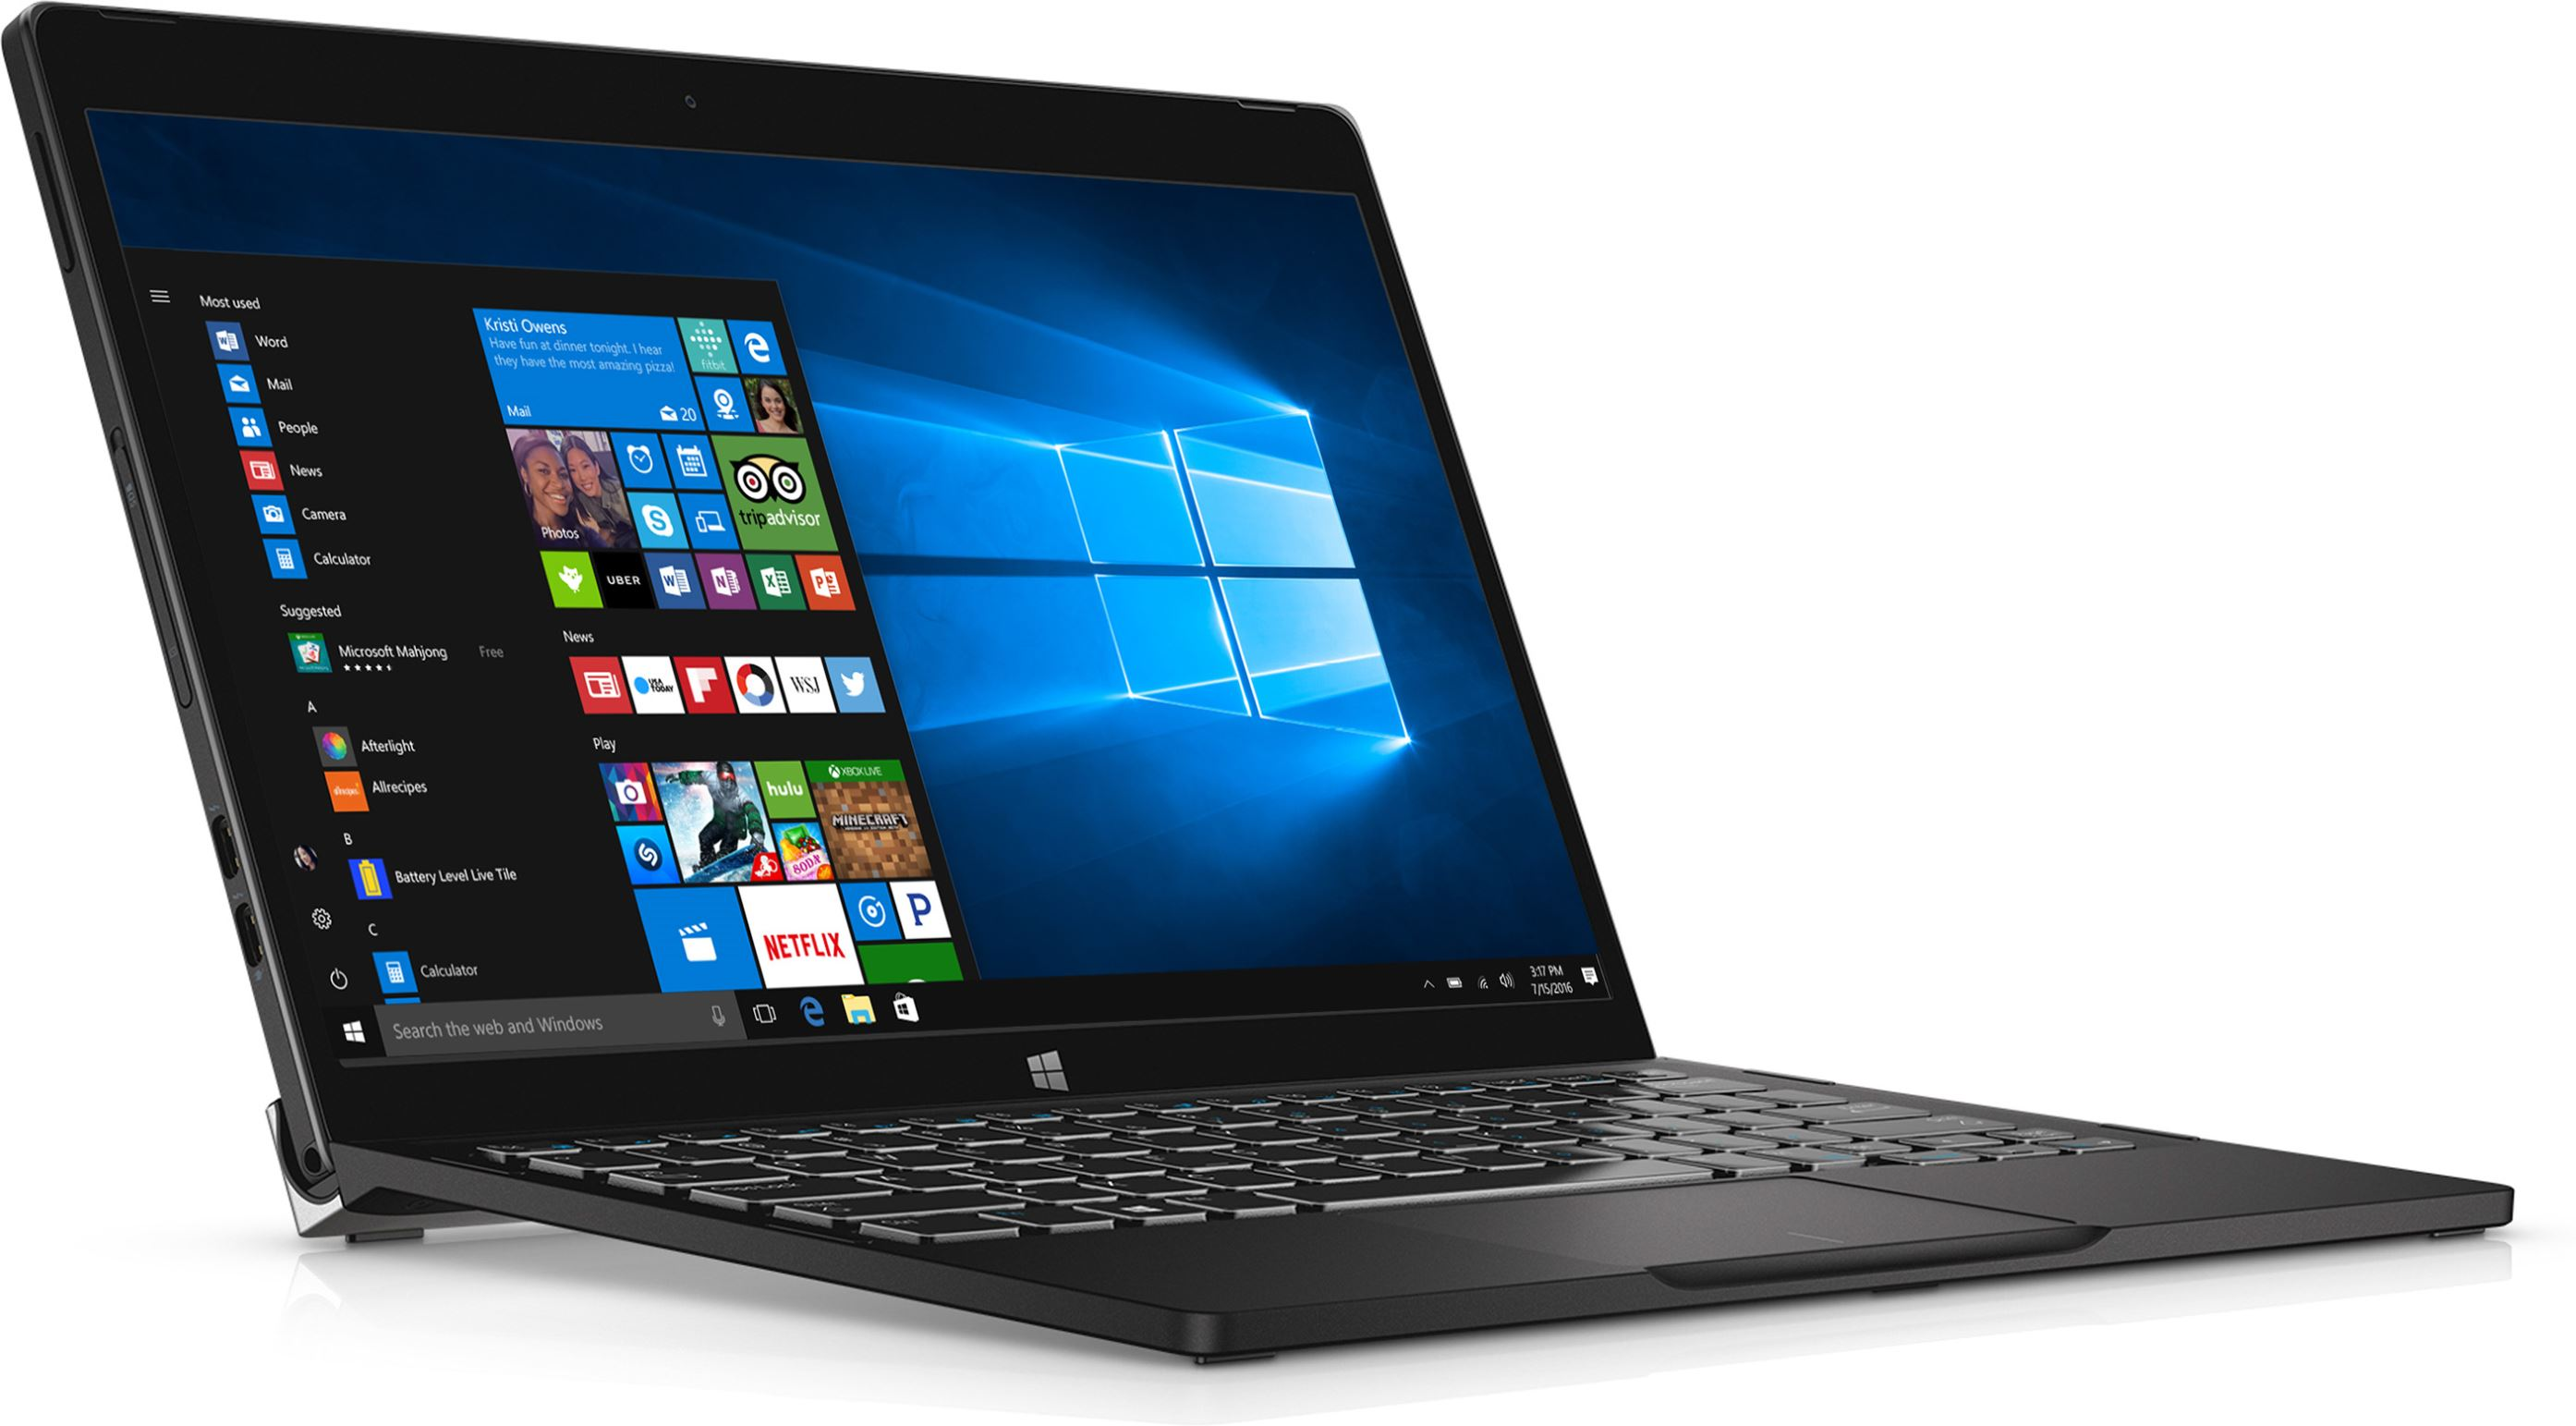 Dell XPS 12 9250-4554WLAN Signature Edition 2 in 1 PC